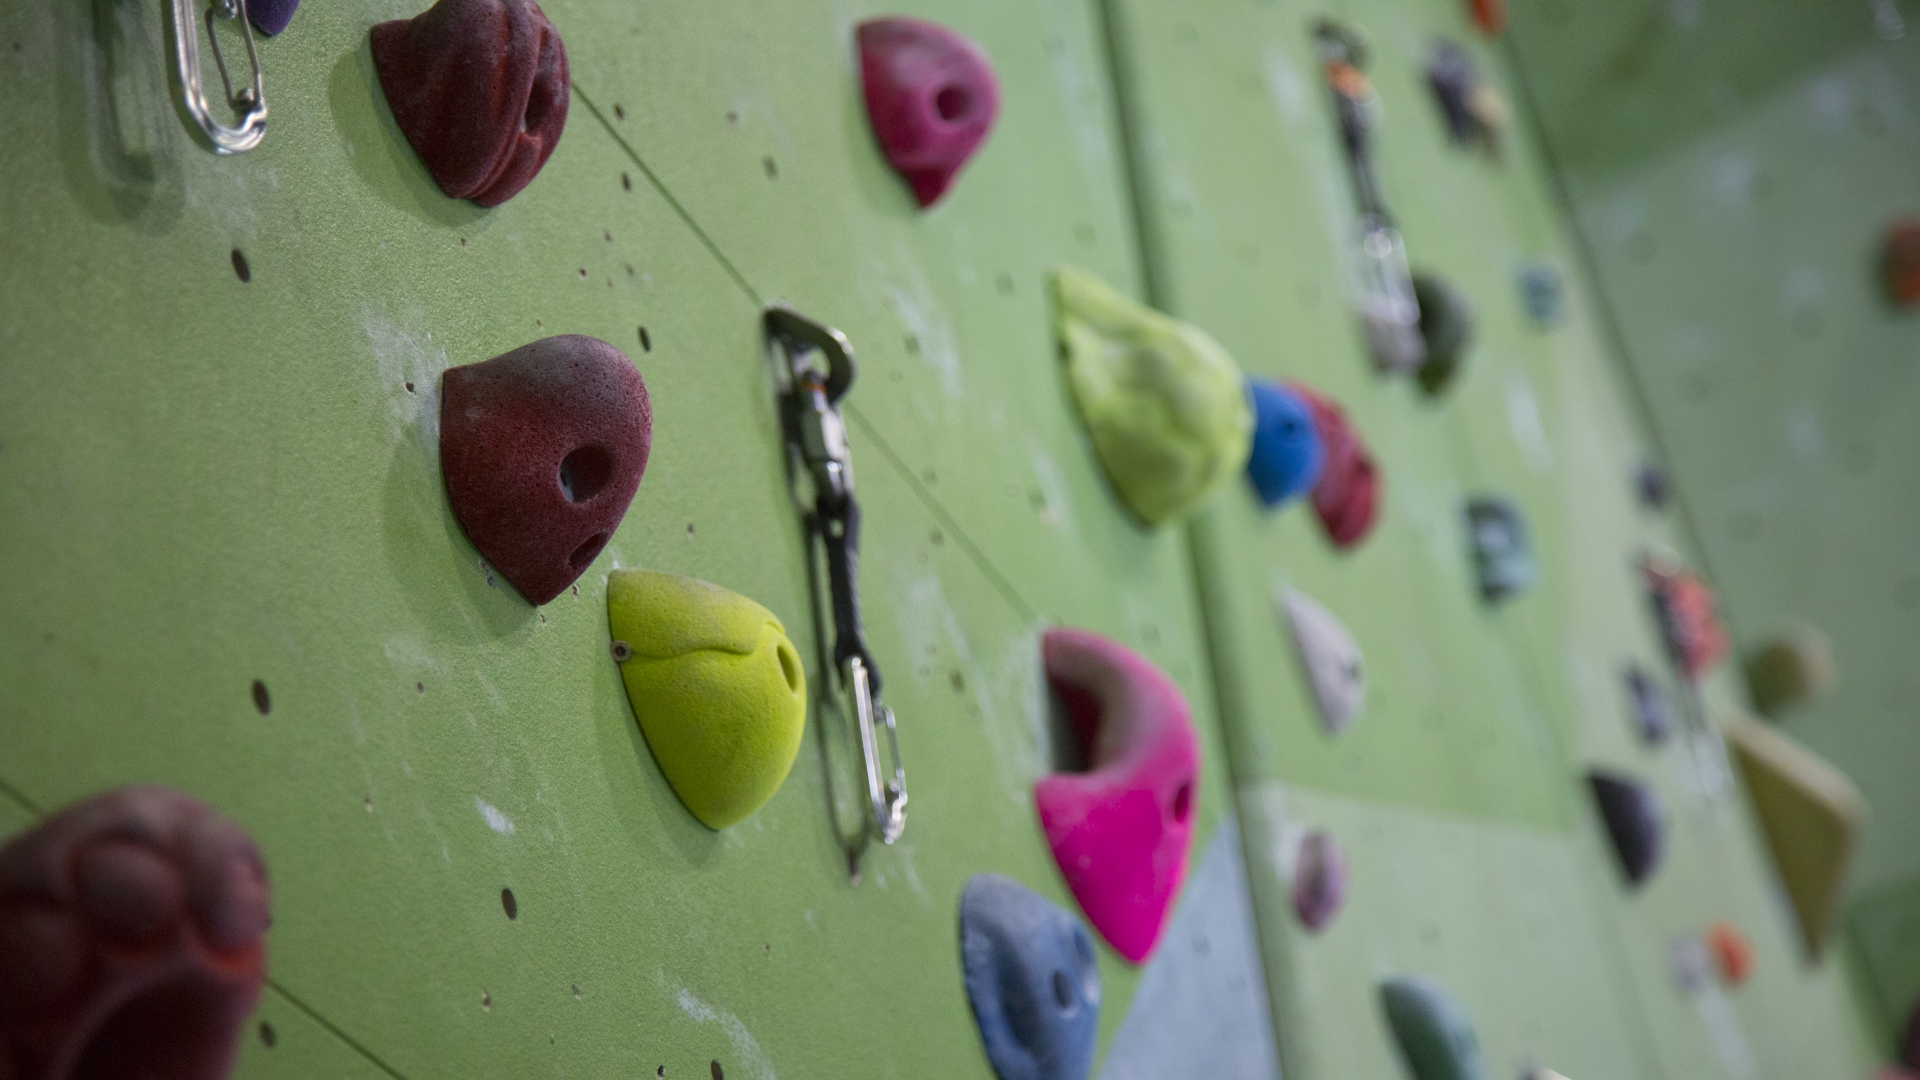 climbing-wall-background-1473870820wlf